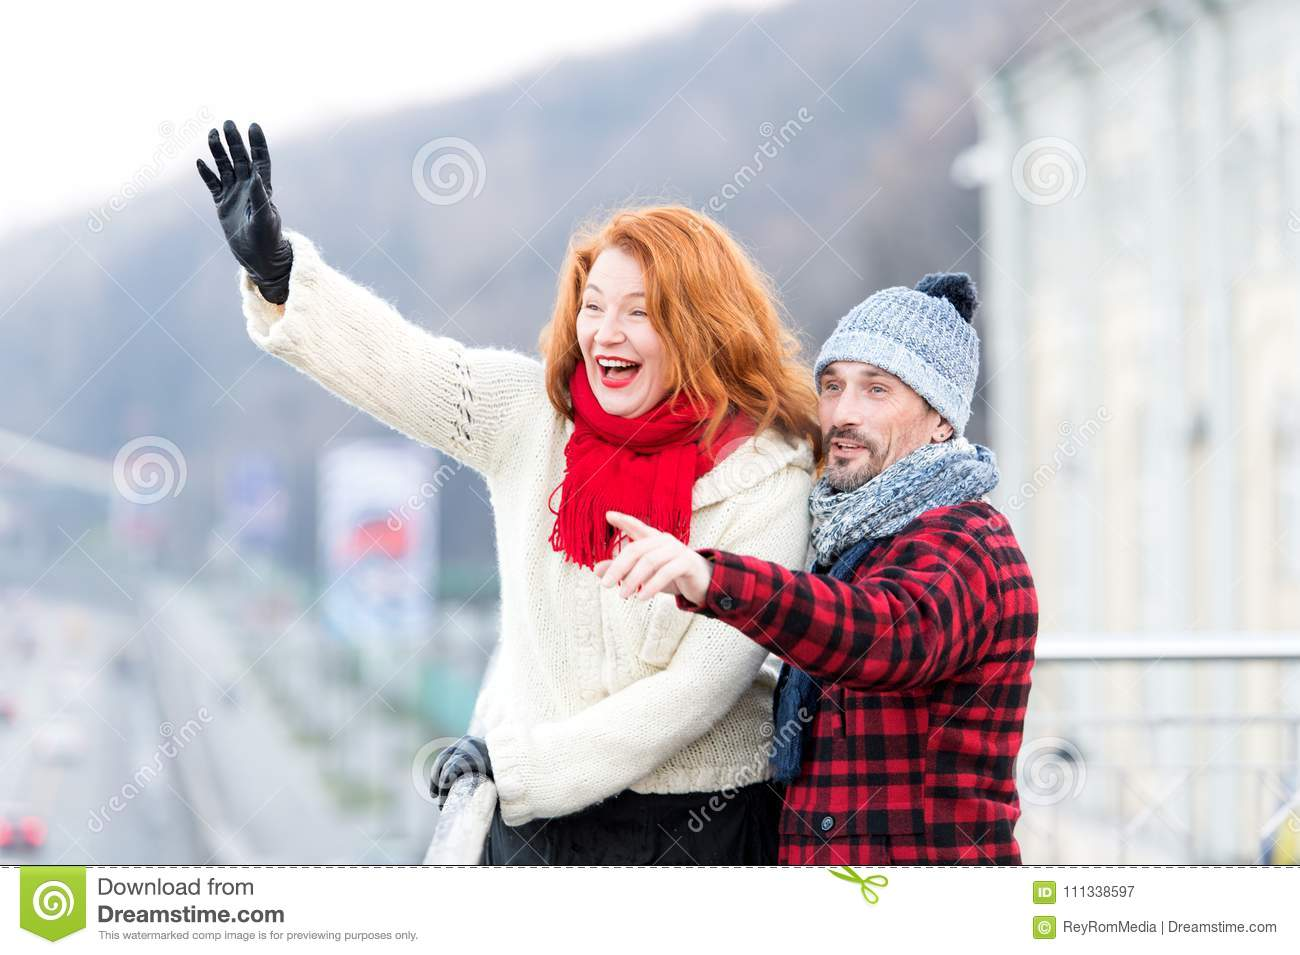 Couple wag to air. Red hair woman wag from the bridge. Happy lady with guy welcomes to friends.